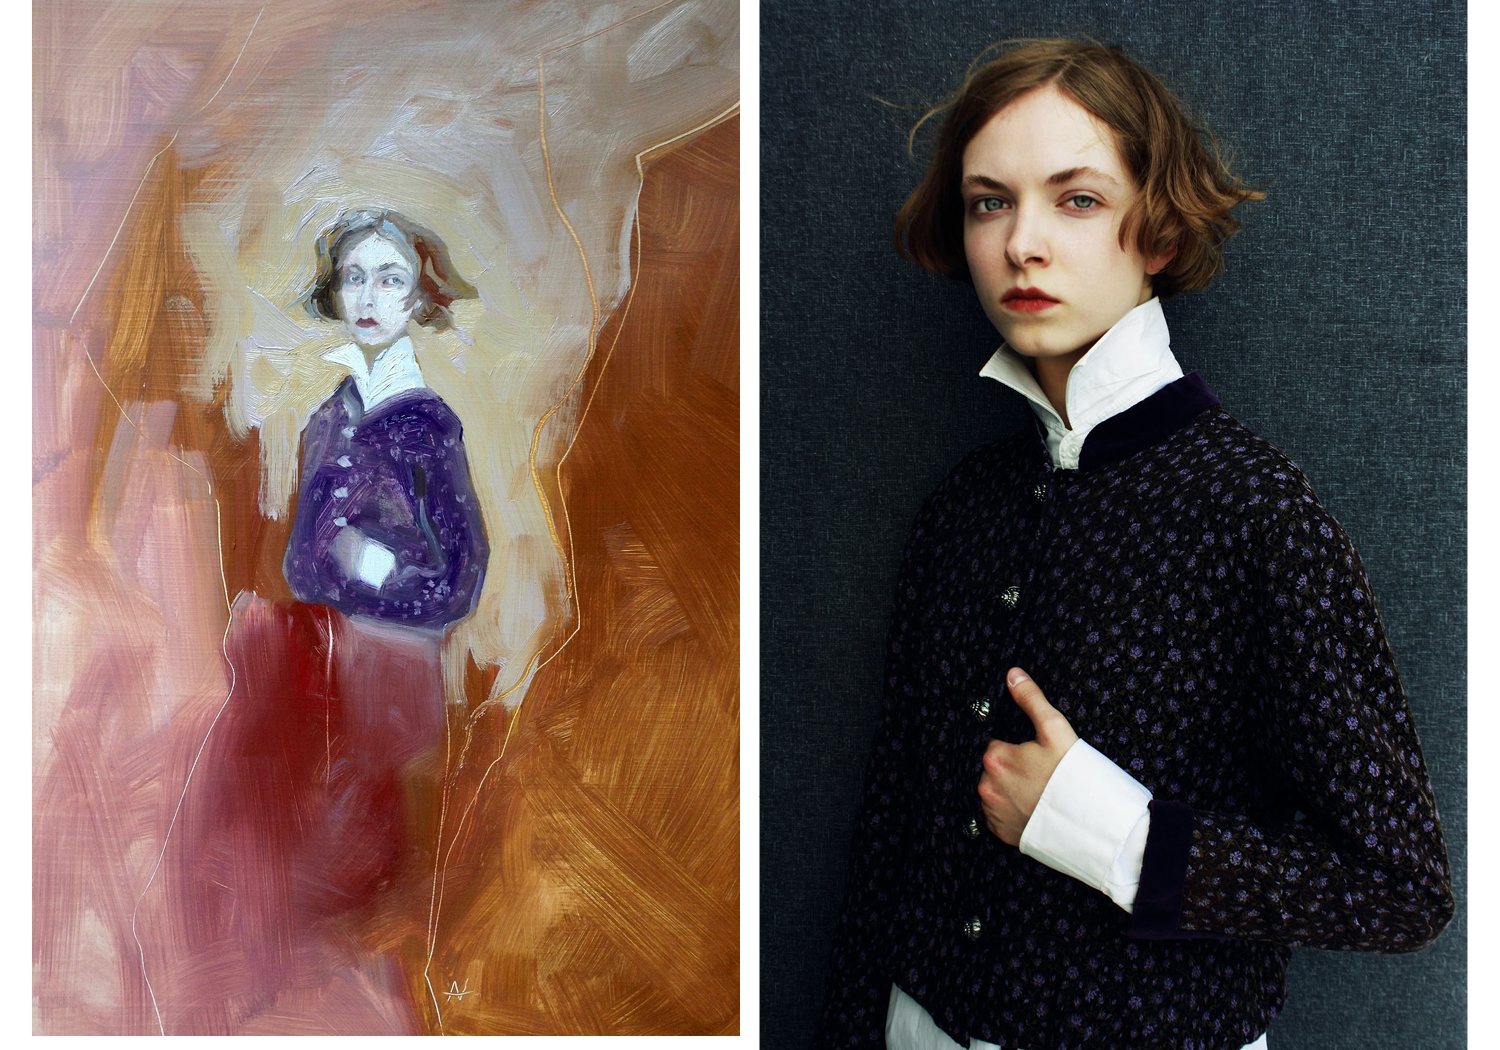 A photography and painting collaboration - between Model/Painter Aneta Vozenilkova & Photographer/Director Balint Nemes